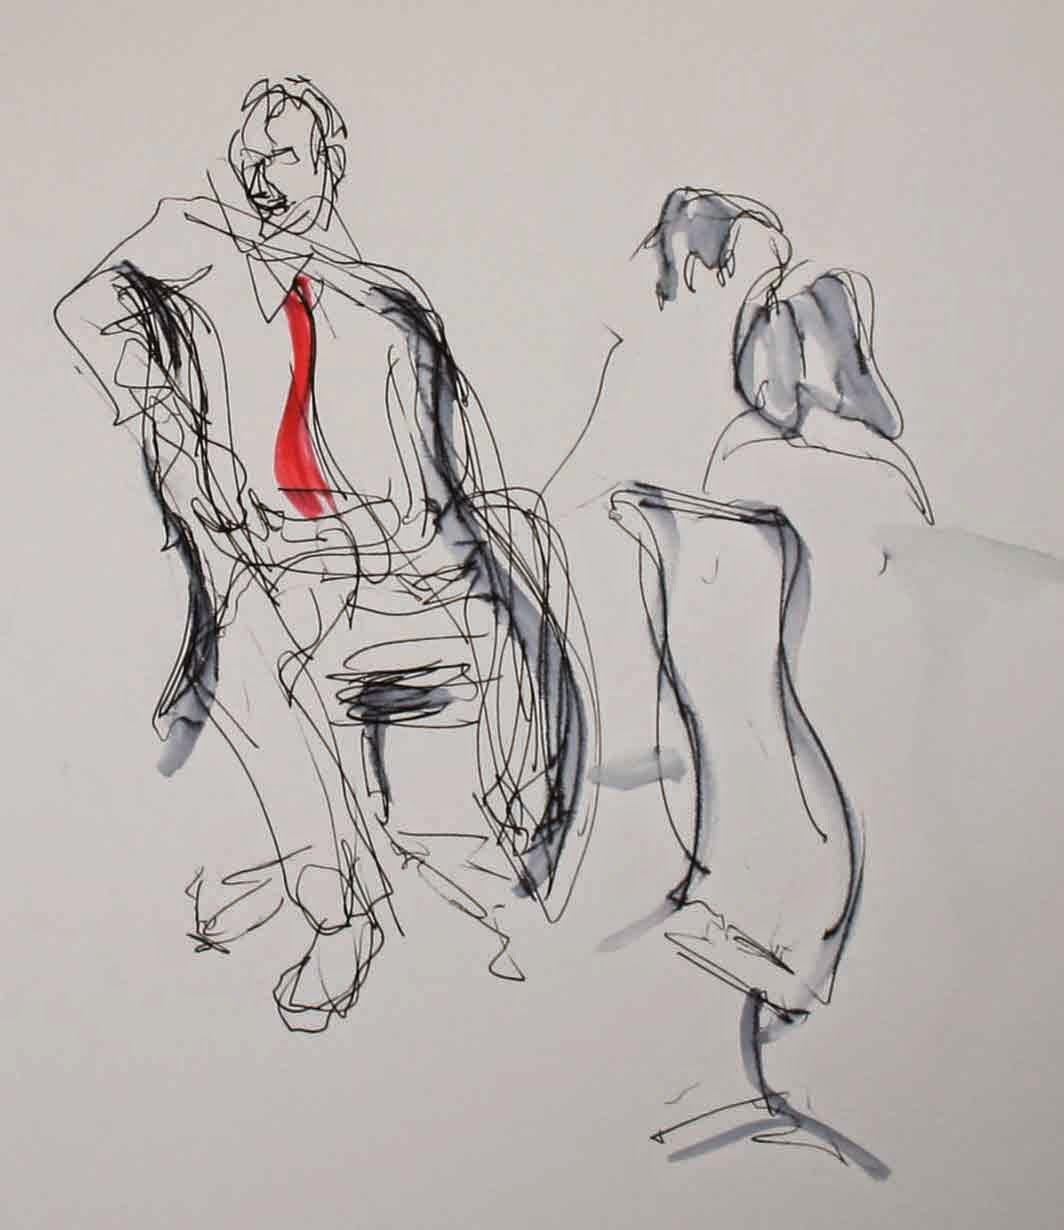 Sketch by Isobel Williams. http://isobelwilliams.blogspot.co.uk/